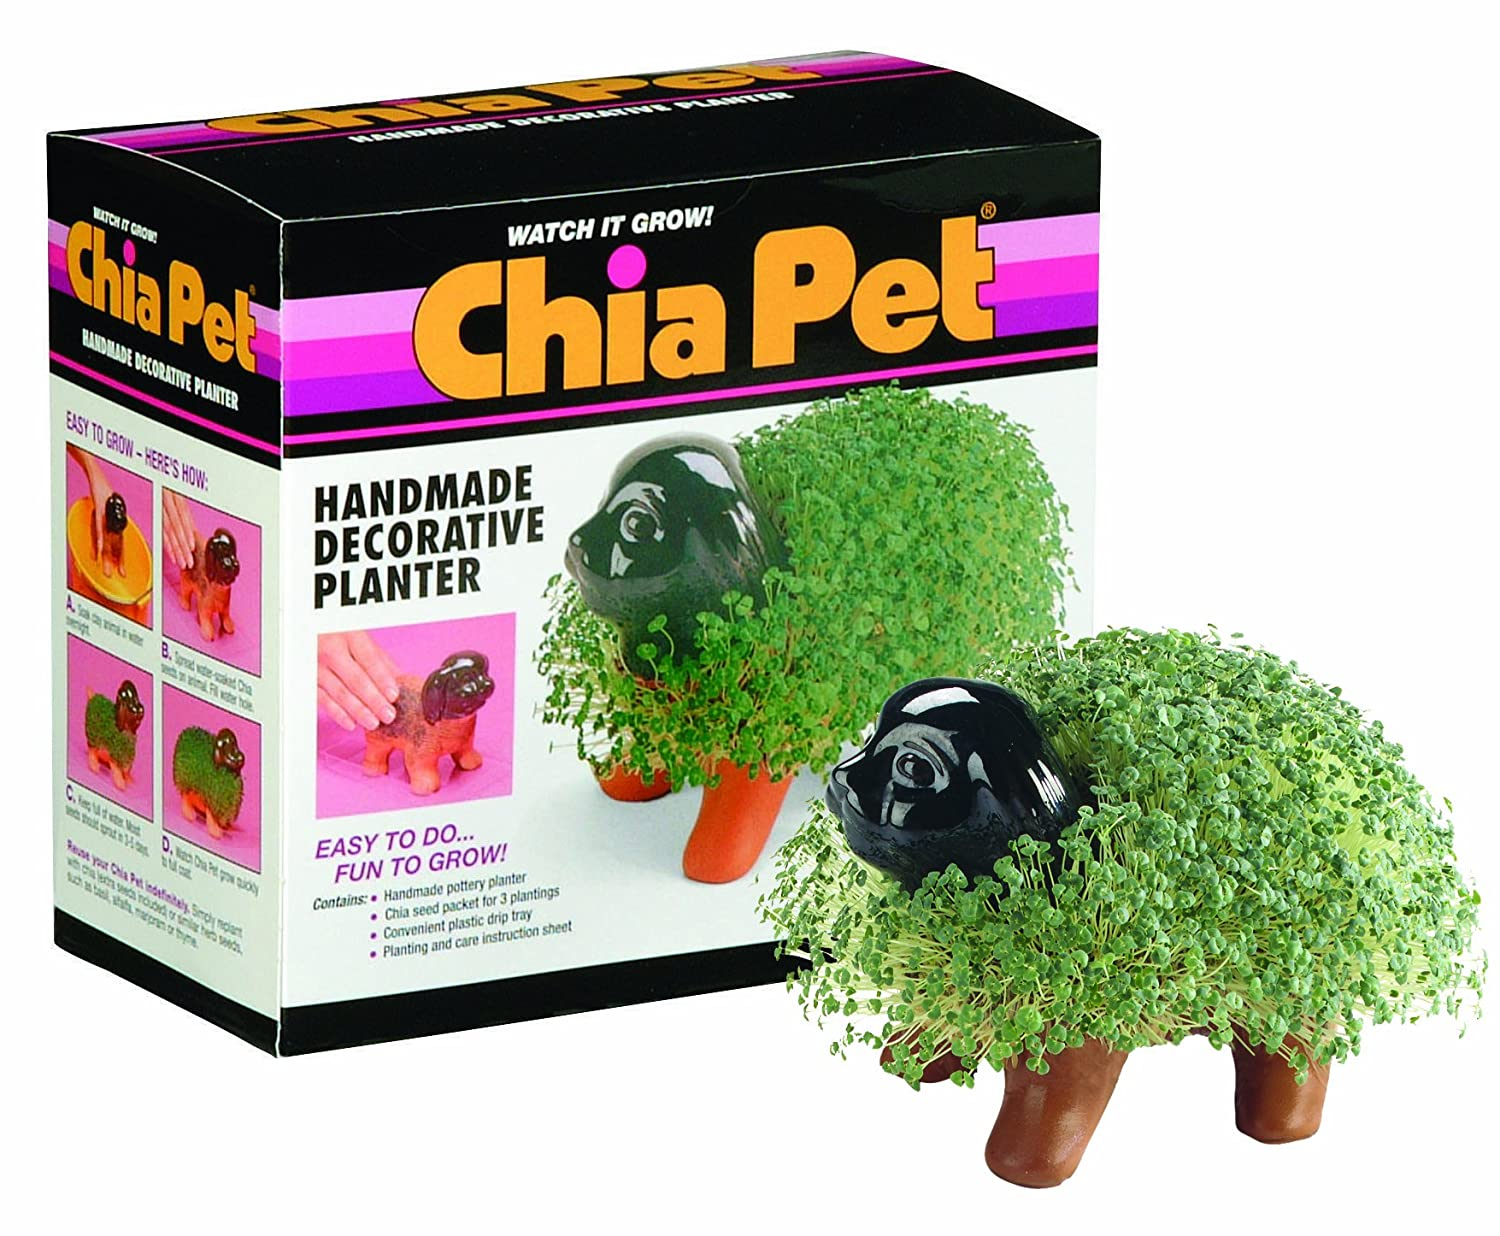 Chia Pet Bob Ross The Joy Of Painting Decorative Pottery Planter Easy To Do And Fun To Grow Novelty Gift Perfect For Any Occasion Cp493 01 1540972508 110000 12 16